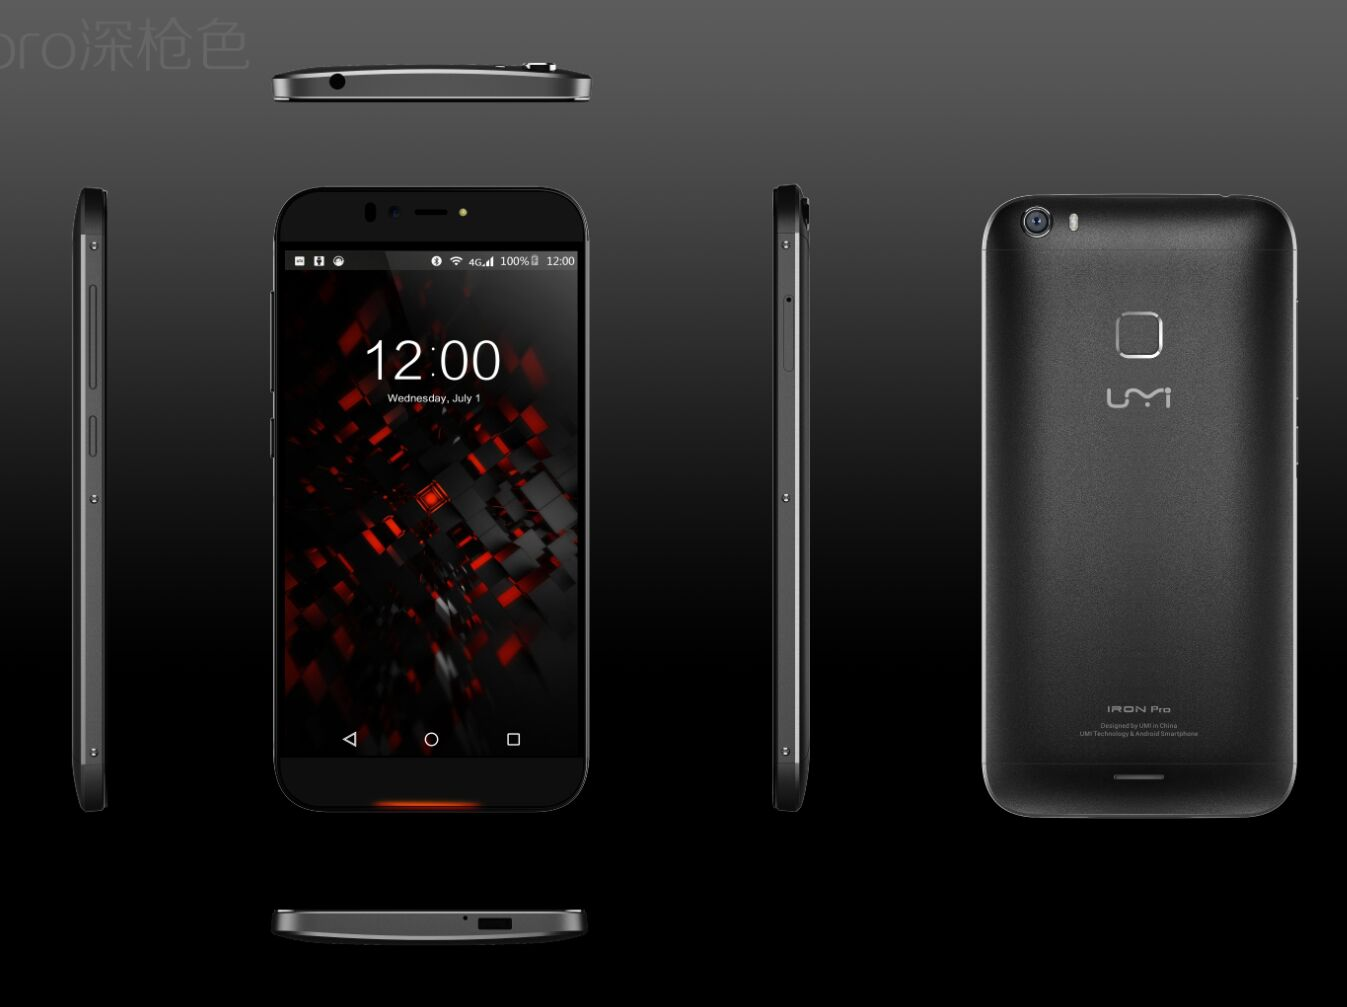 UMi iRon Pro is an upcoming smartphone that offers three very unique forms of security